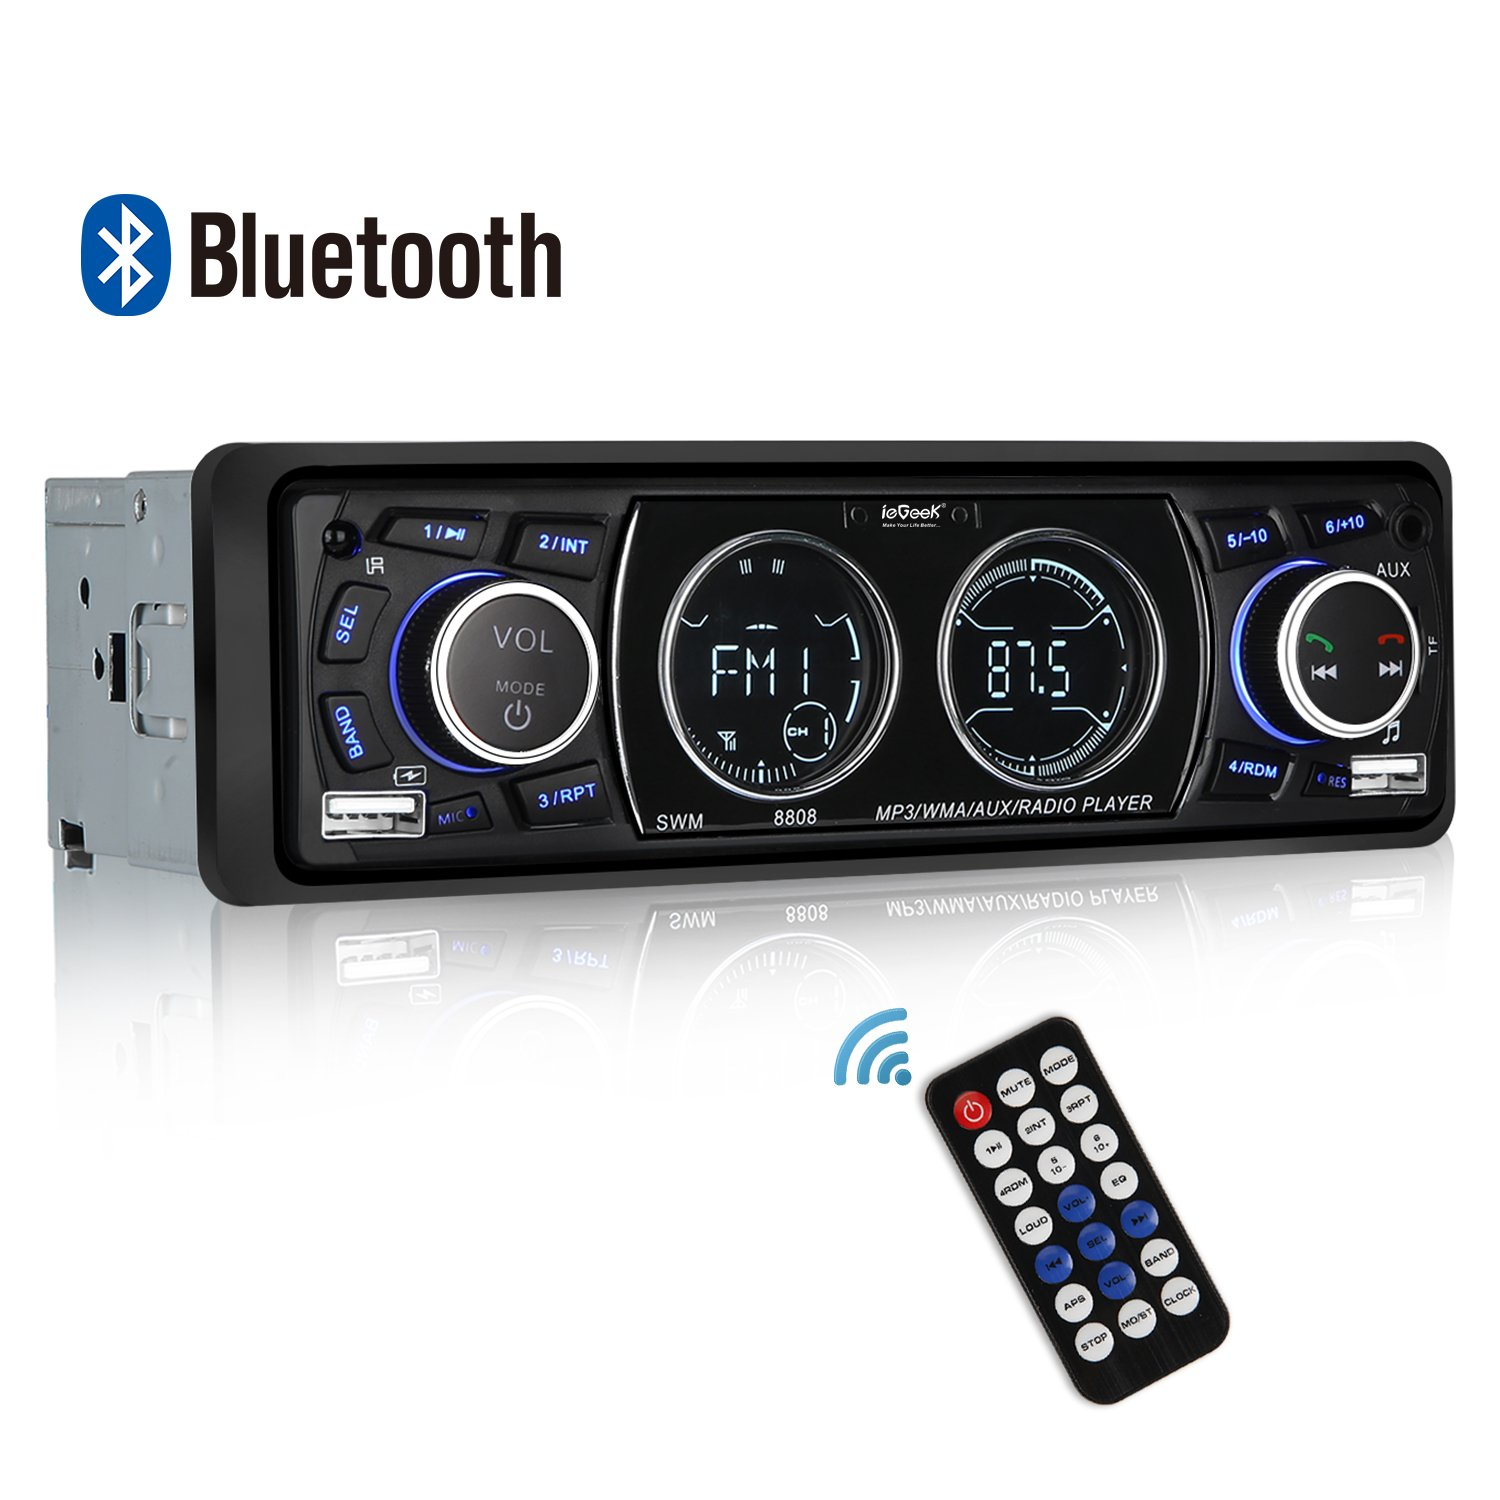 Autoradio Bluetooth Coche, ieGeek Autoradio Bluetooth Manos Libres, USB/SD/AUX/